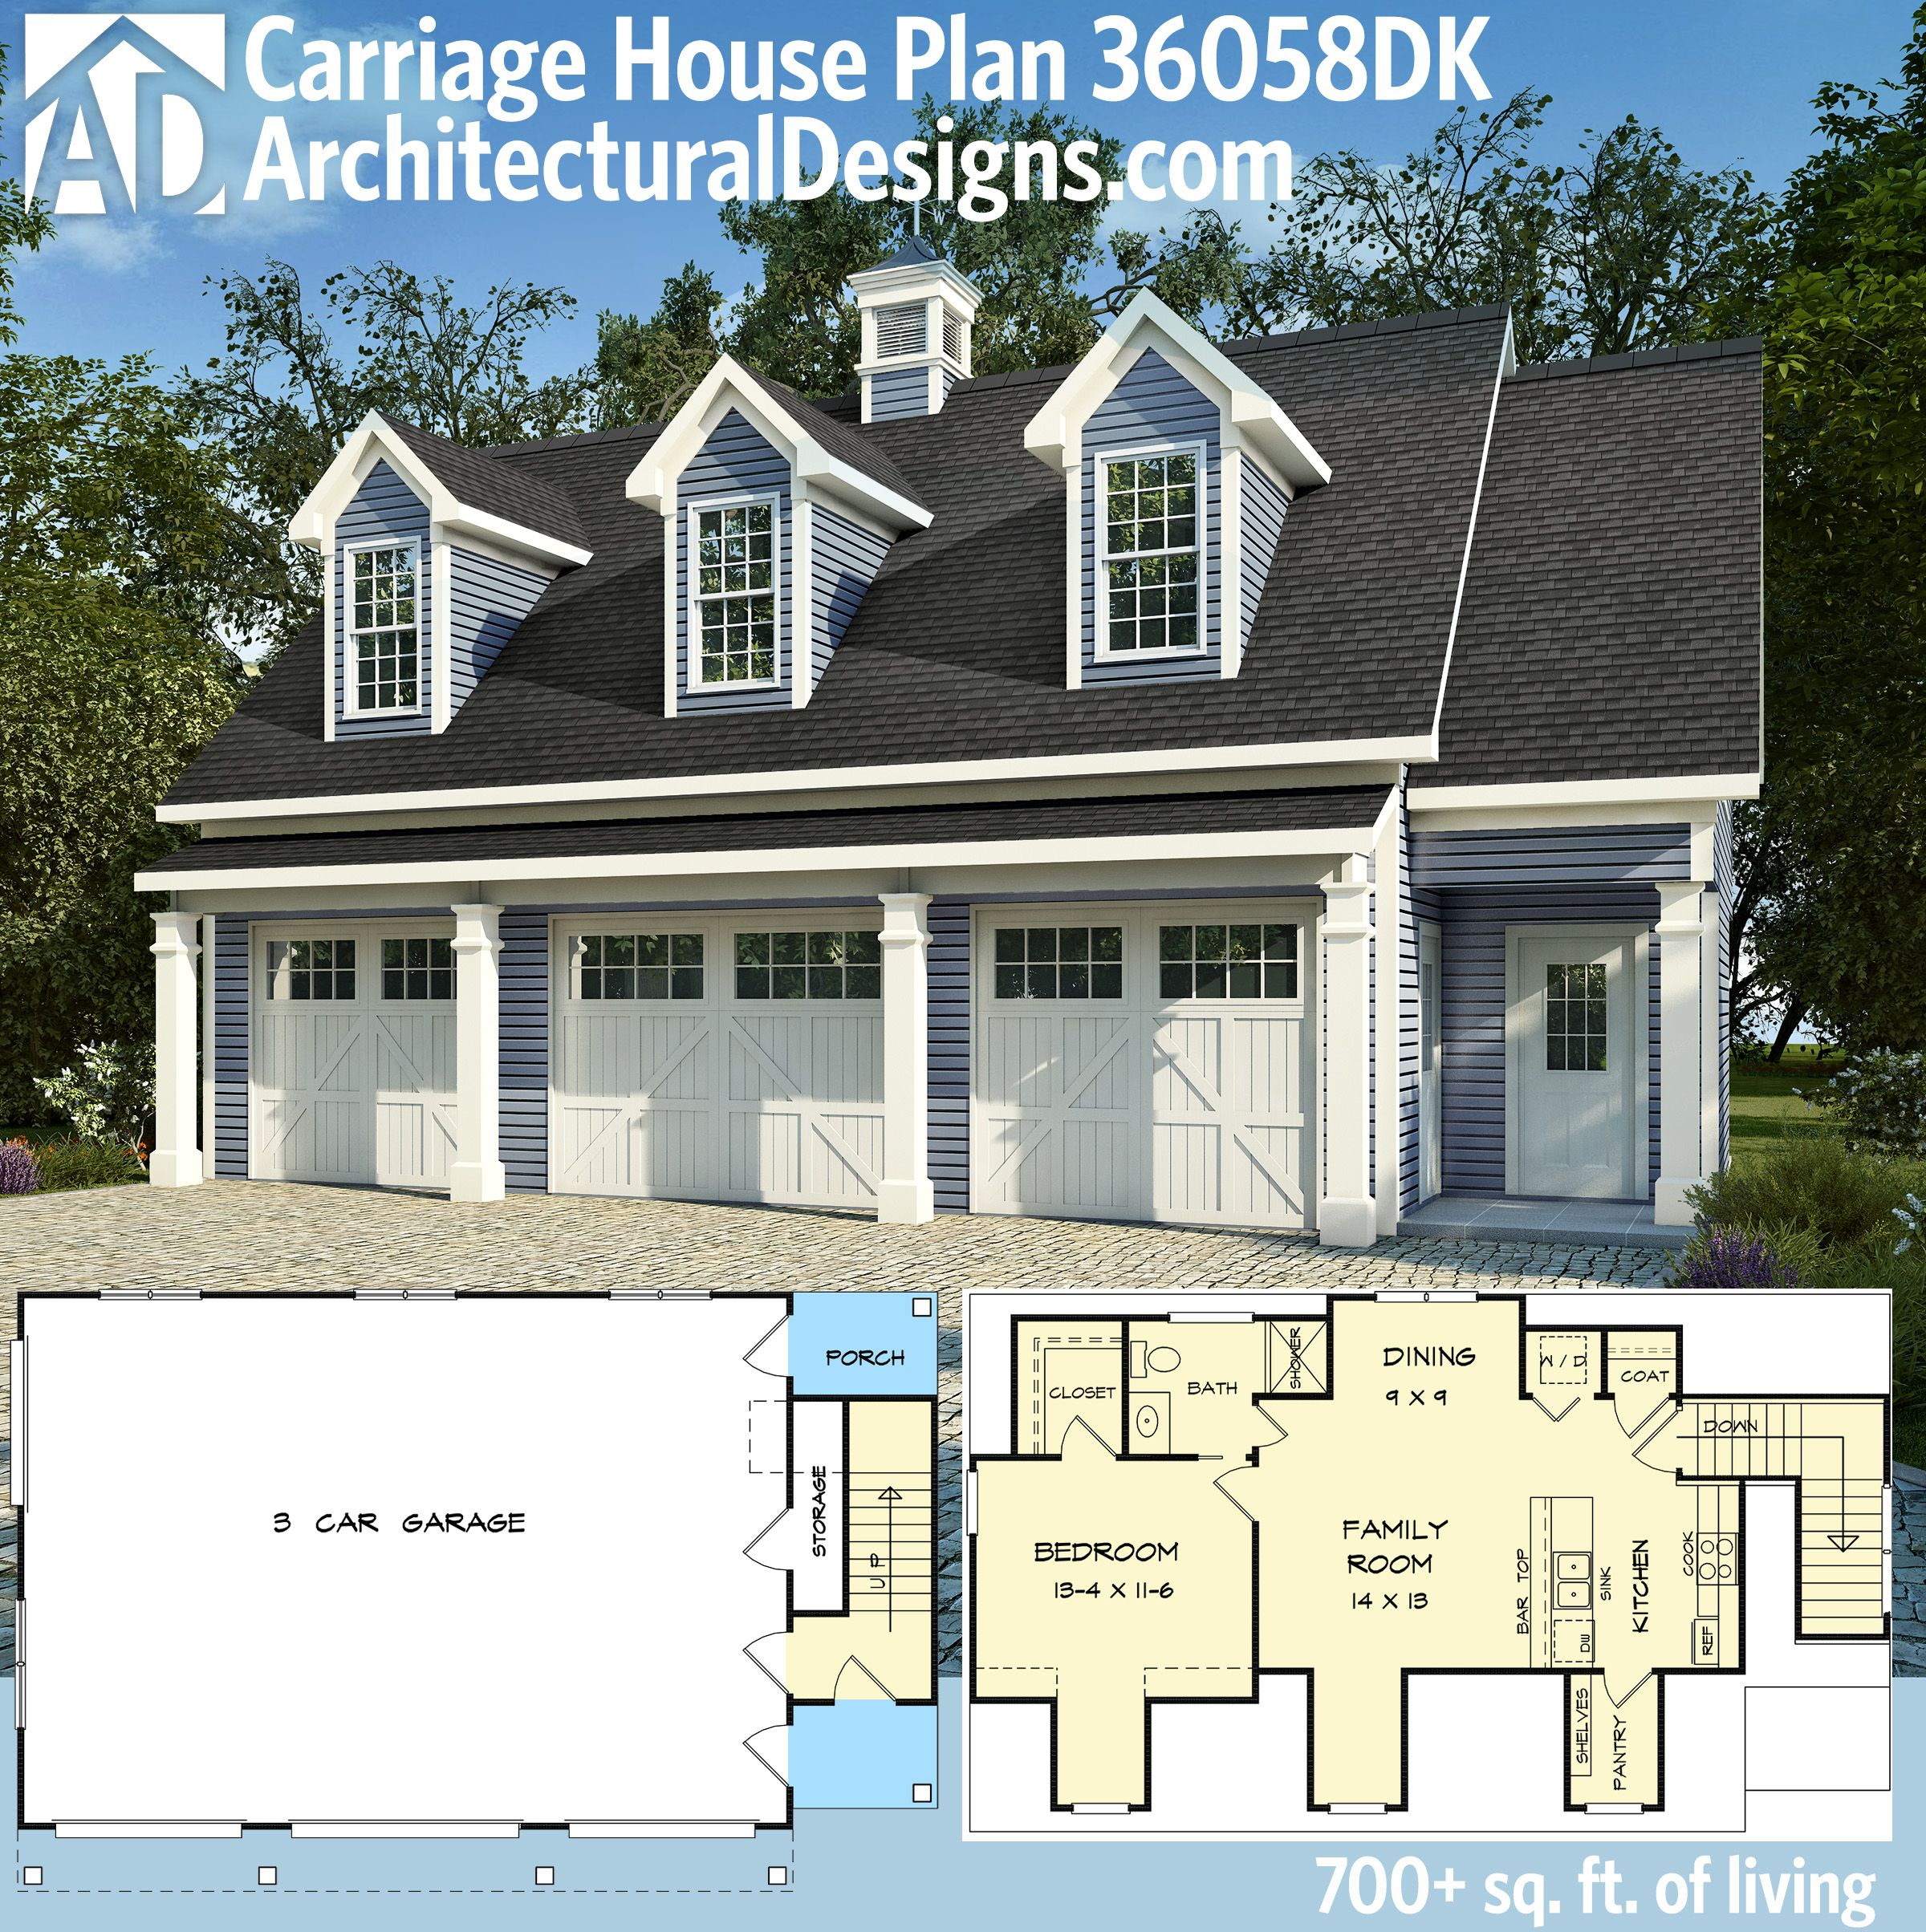 Plan 36058dk 3 car carriage house plan with 3 dormers for Carriage home designs